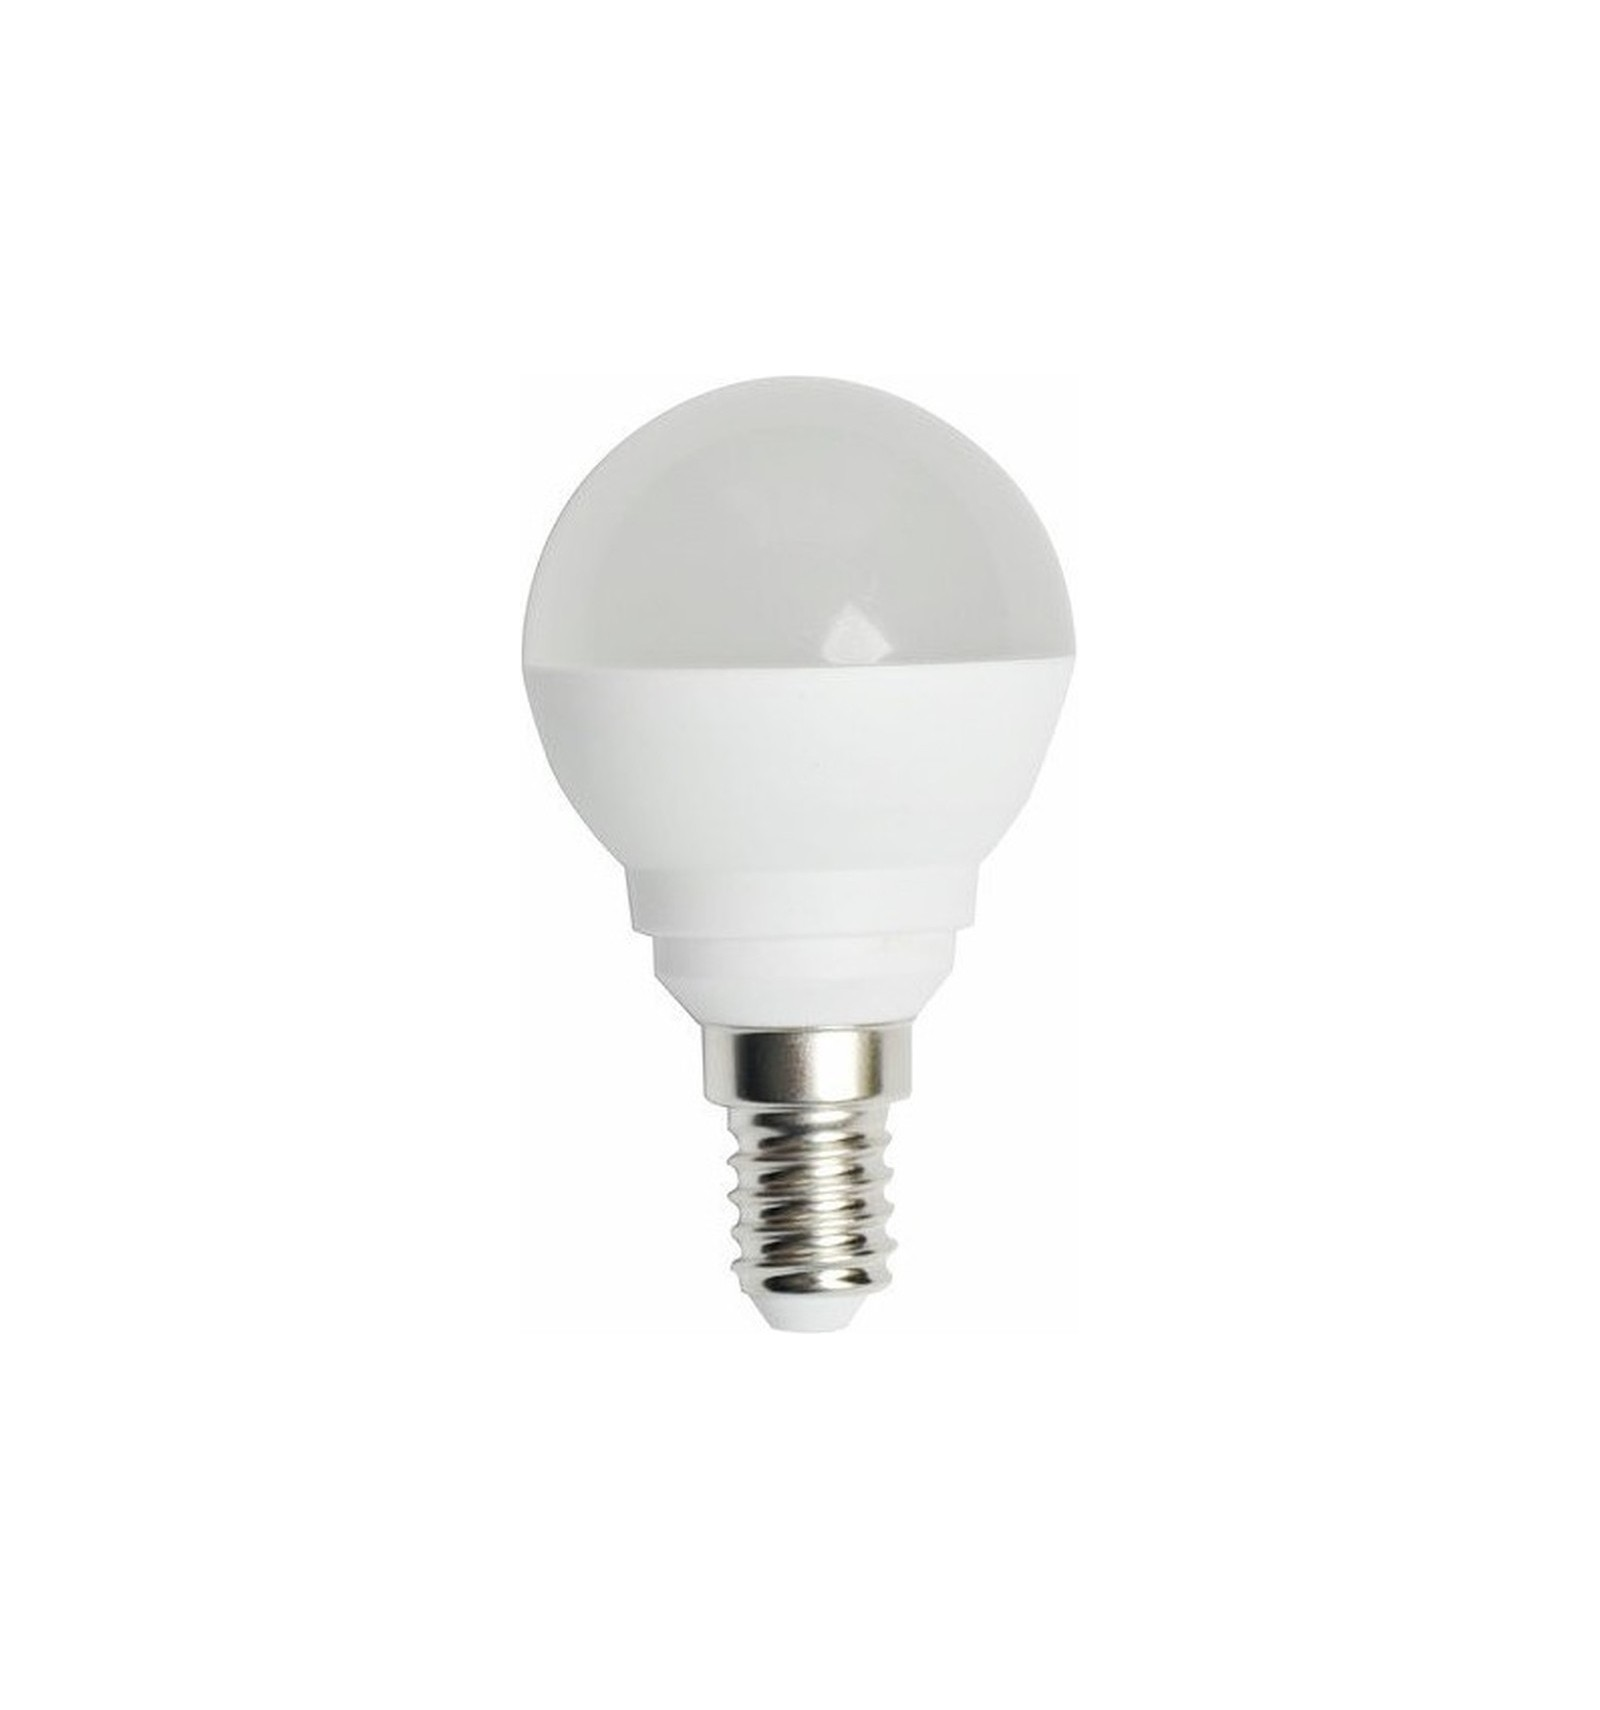 led-lamp-e14-5w-390lm-cold Faszinierend E14 Led 400 Lumen Dekorationen